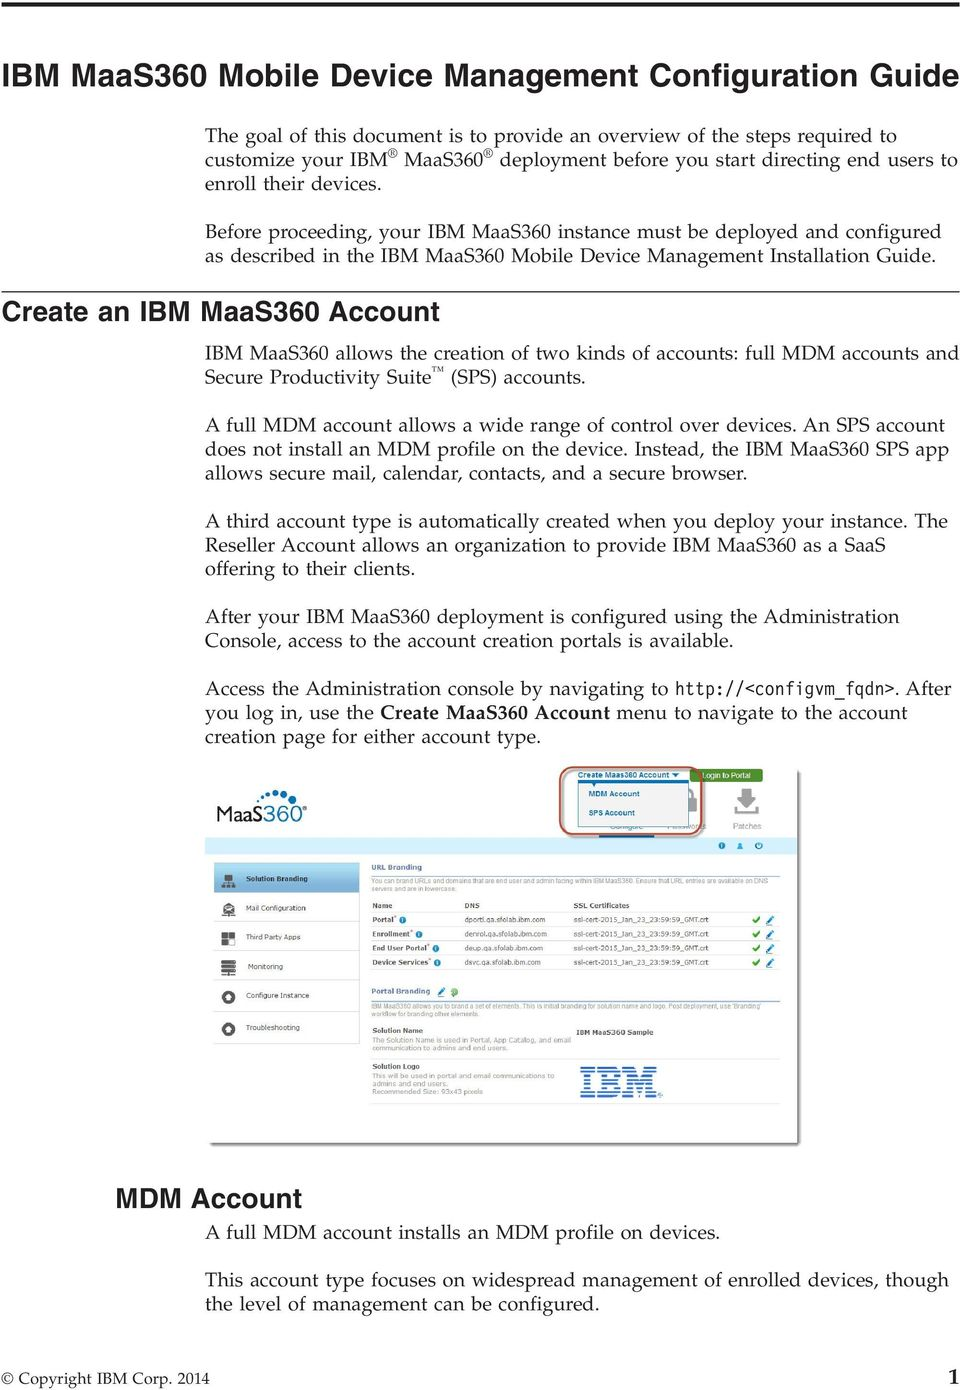 IBM MaaS360 Mobile Device Management  Configuration Guide